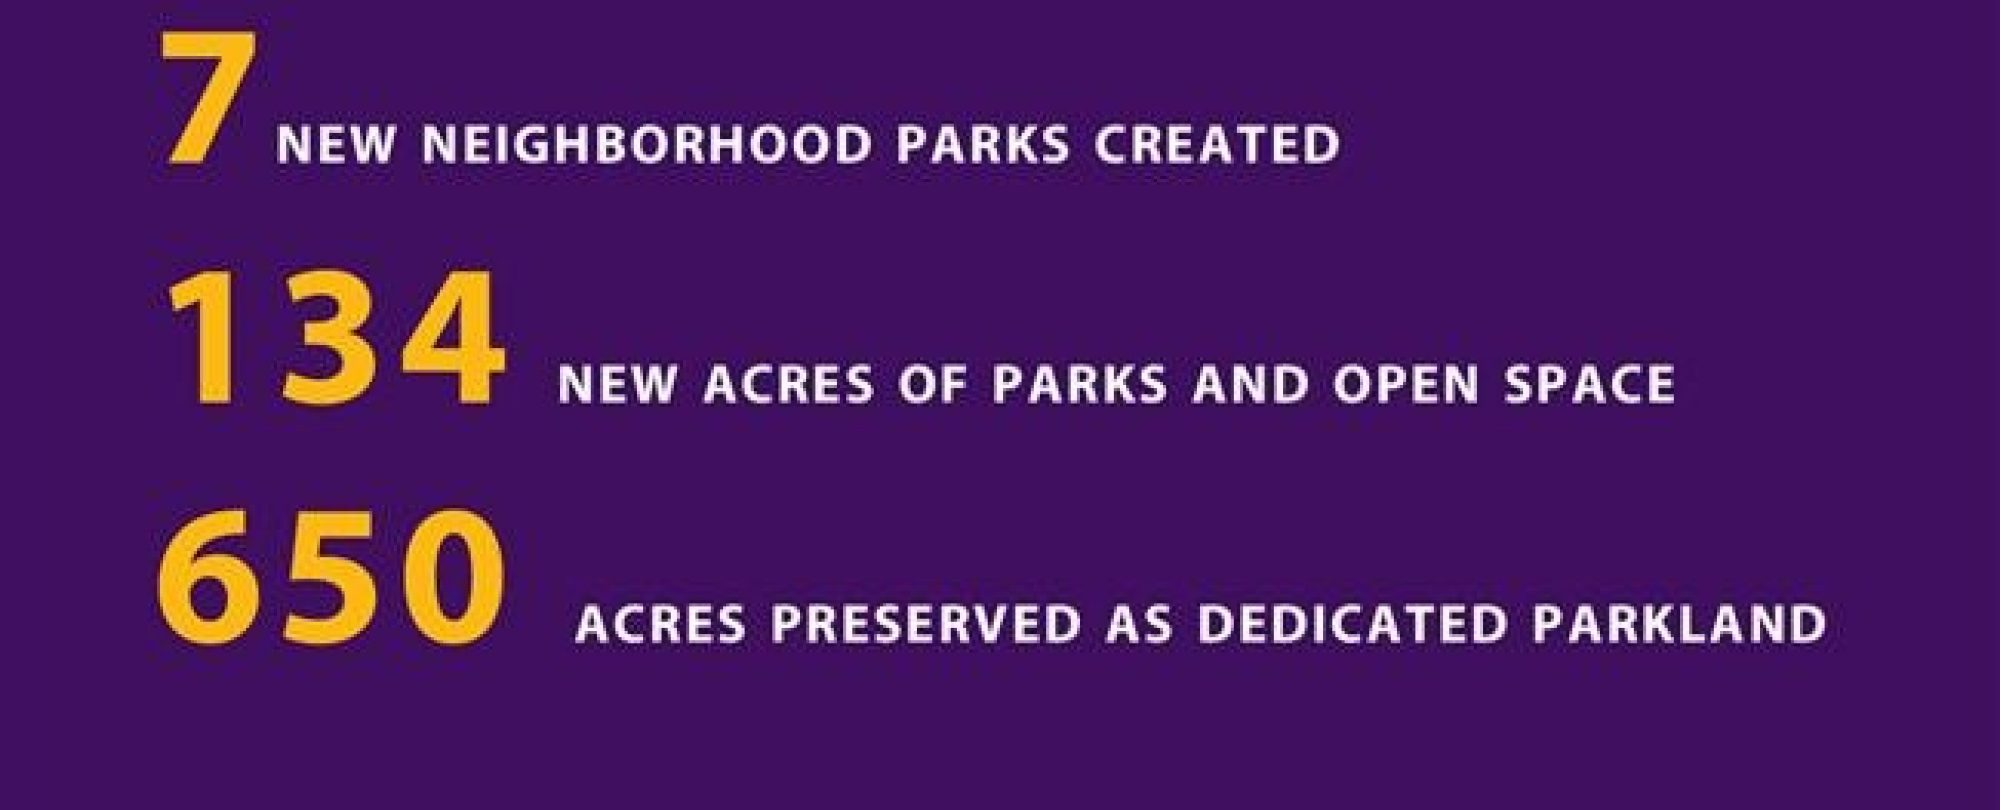 7 new neighborhood parks created. 134 new acres of parks and open space. 650 acres preserved as dedicated park land.